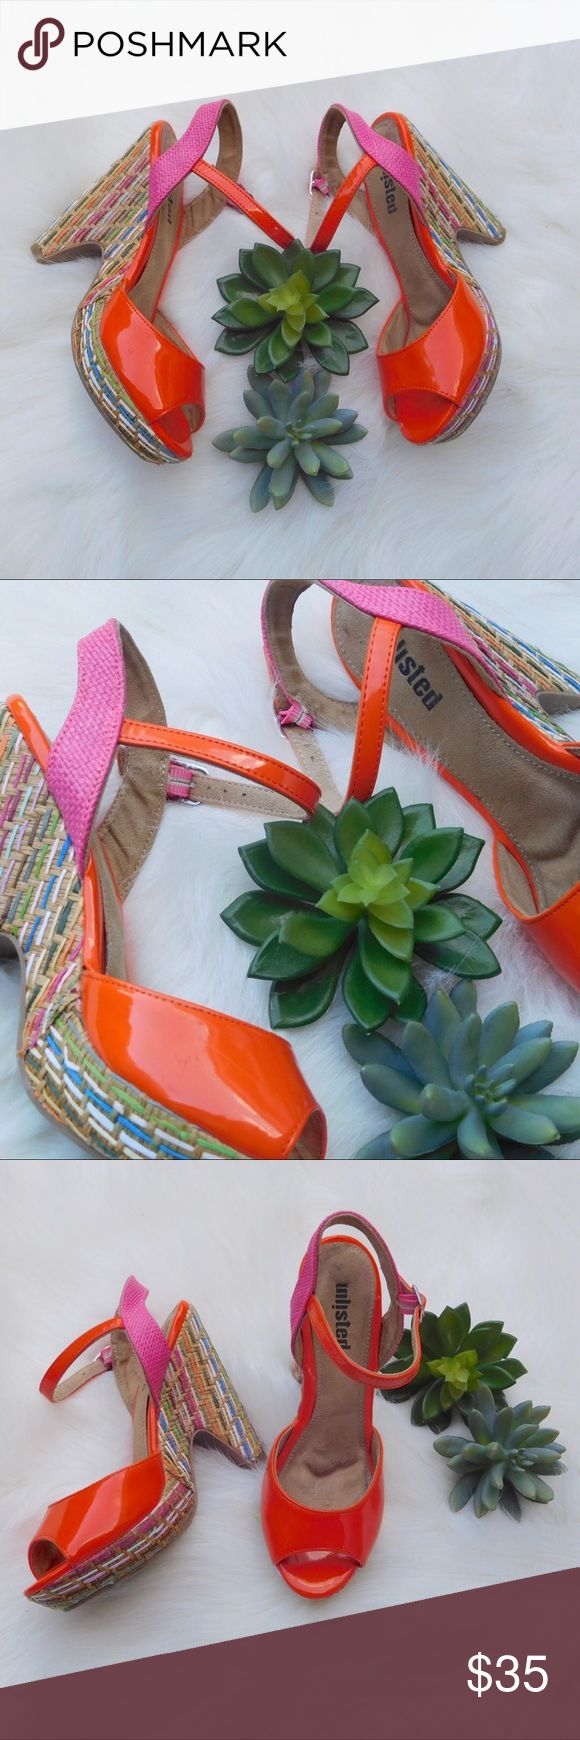 "Unlisted Orange Espadrille Rainbow Wedges Sz 6 Gently used, has minor signs of wear. Very light scuff mark shown in photos. Barely noticeable. Some of the threaded rainbow material is slightly lifted. Heel: 4 1/2"", Platform: 1"". Inner sole has minor signs of wear. Size 6 Unlisted Shoes Wedges"